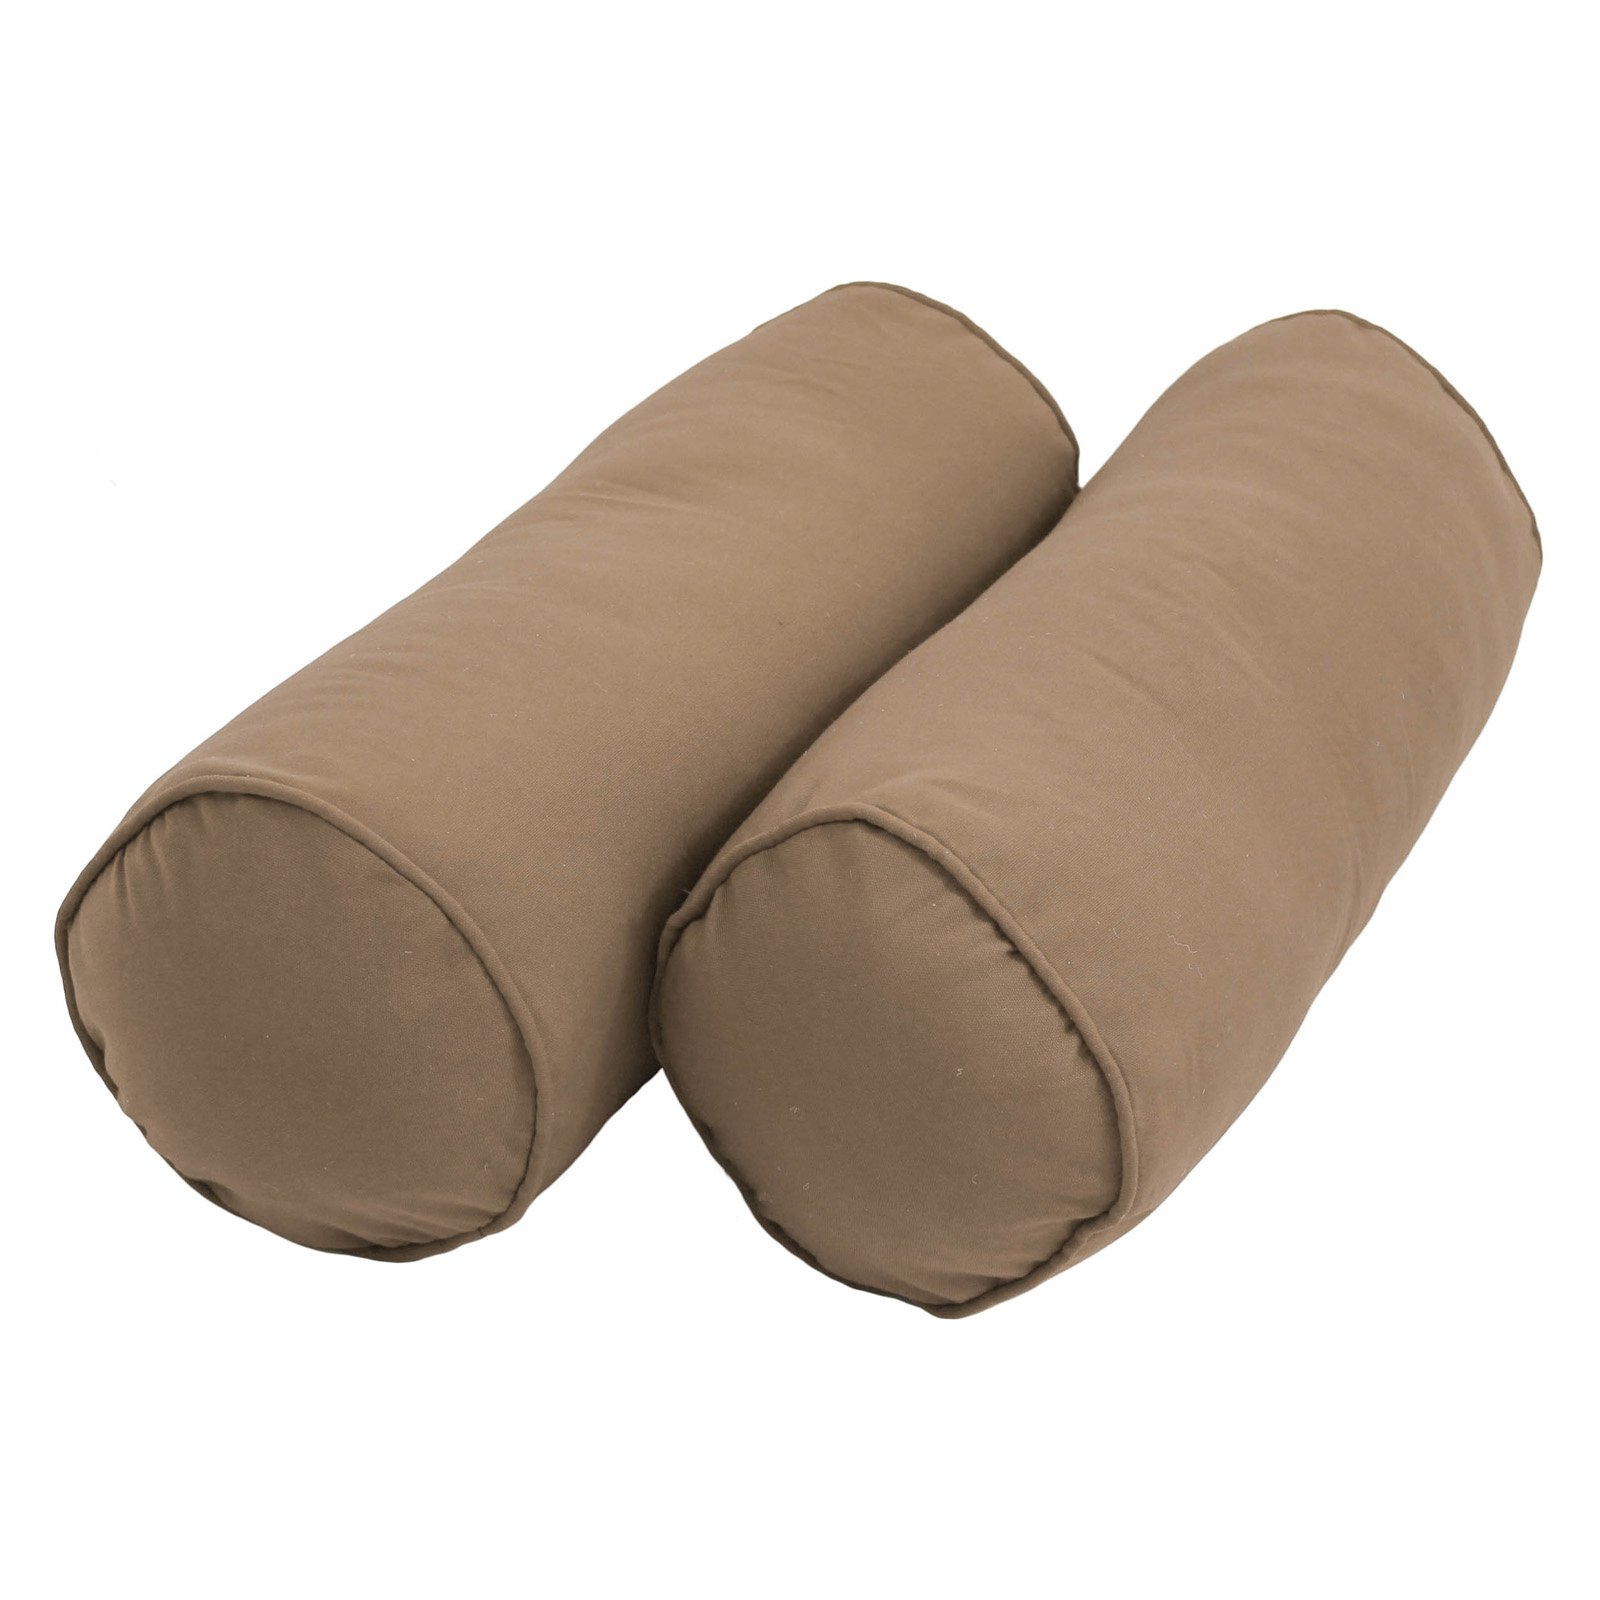 blazing needles twill bolster pillows with cording and inserts set of 2